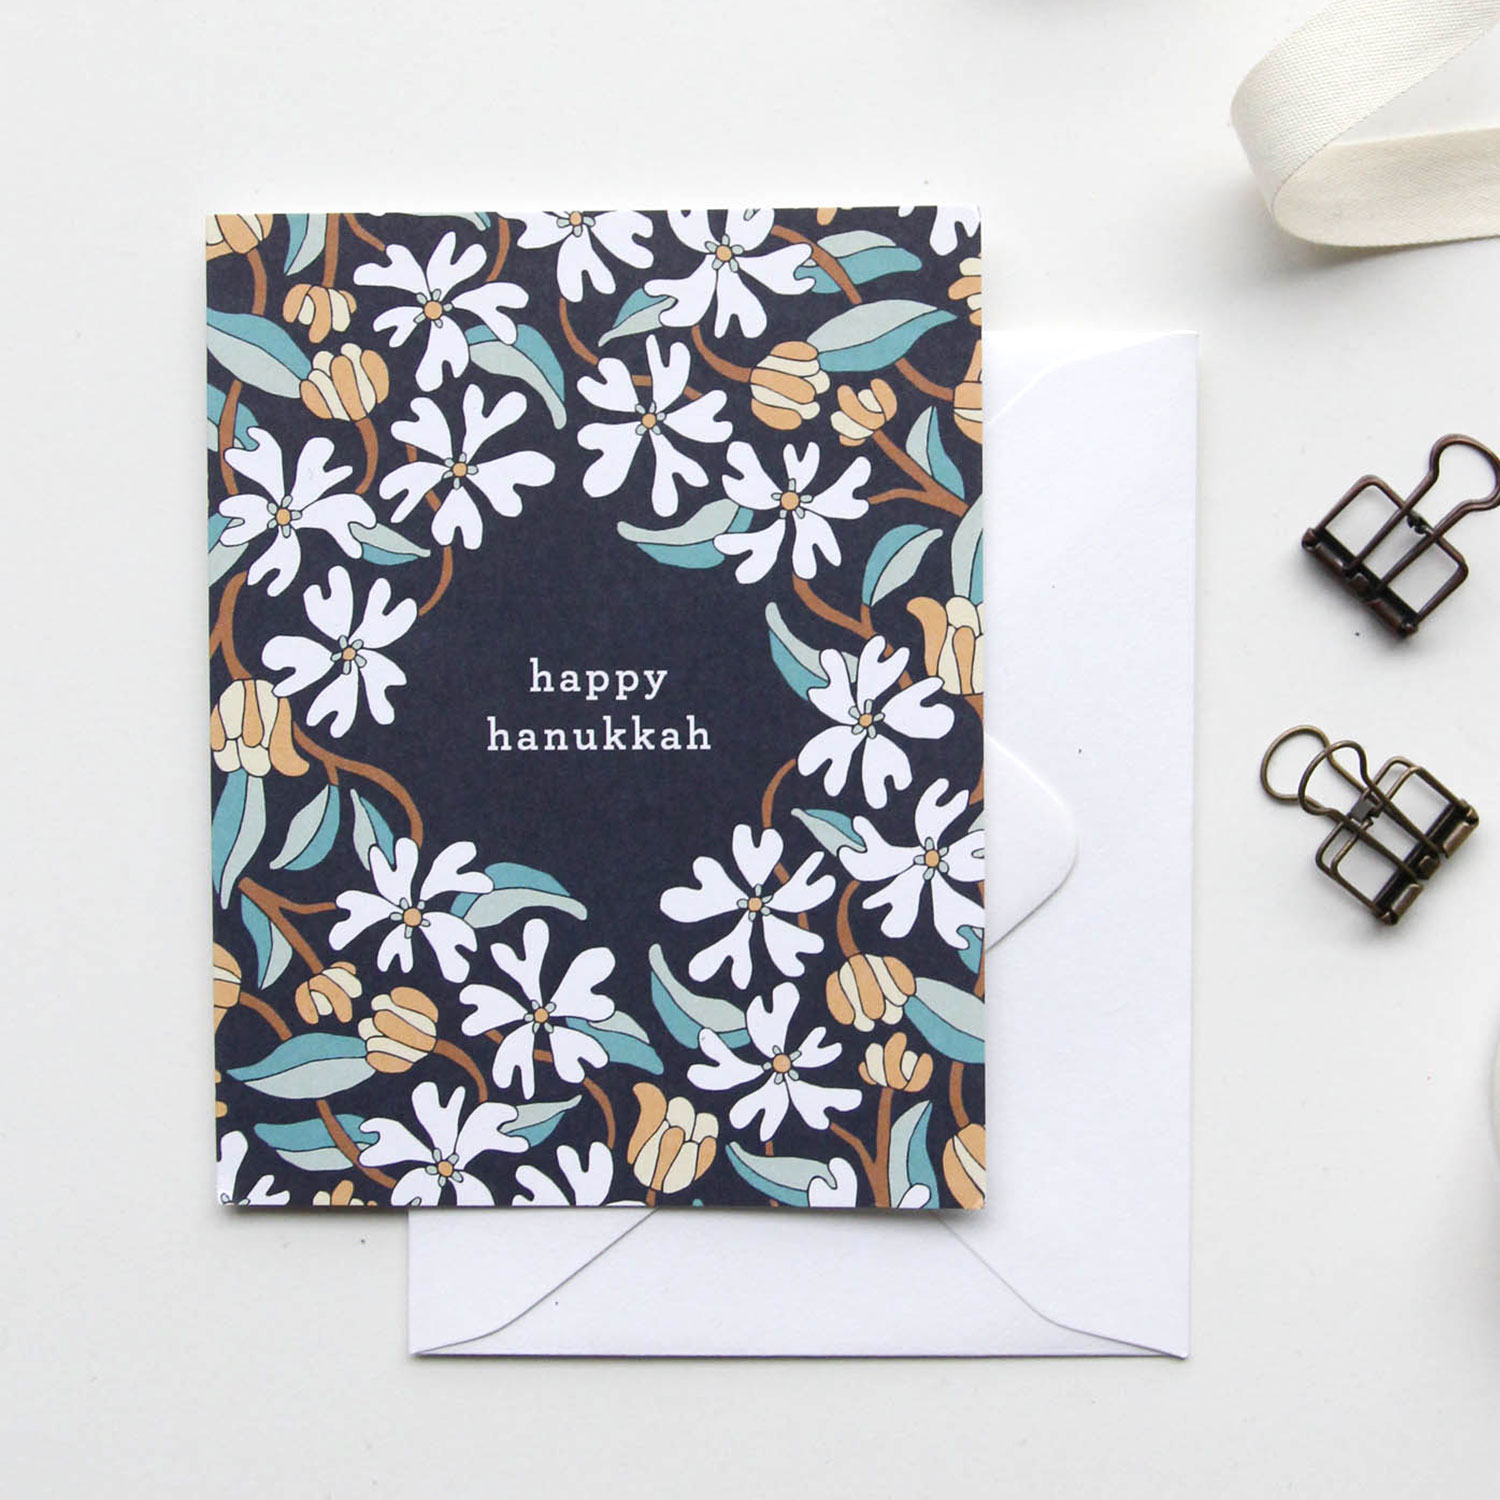 Happy Hanukkah Card - Christmas Cards 2018, Holiday Cards | Illustrated Floral Holiday Cards by Root & Branch Paper Co.